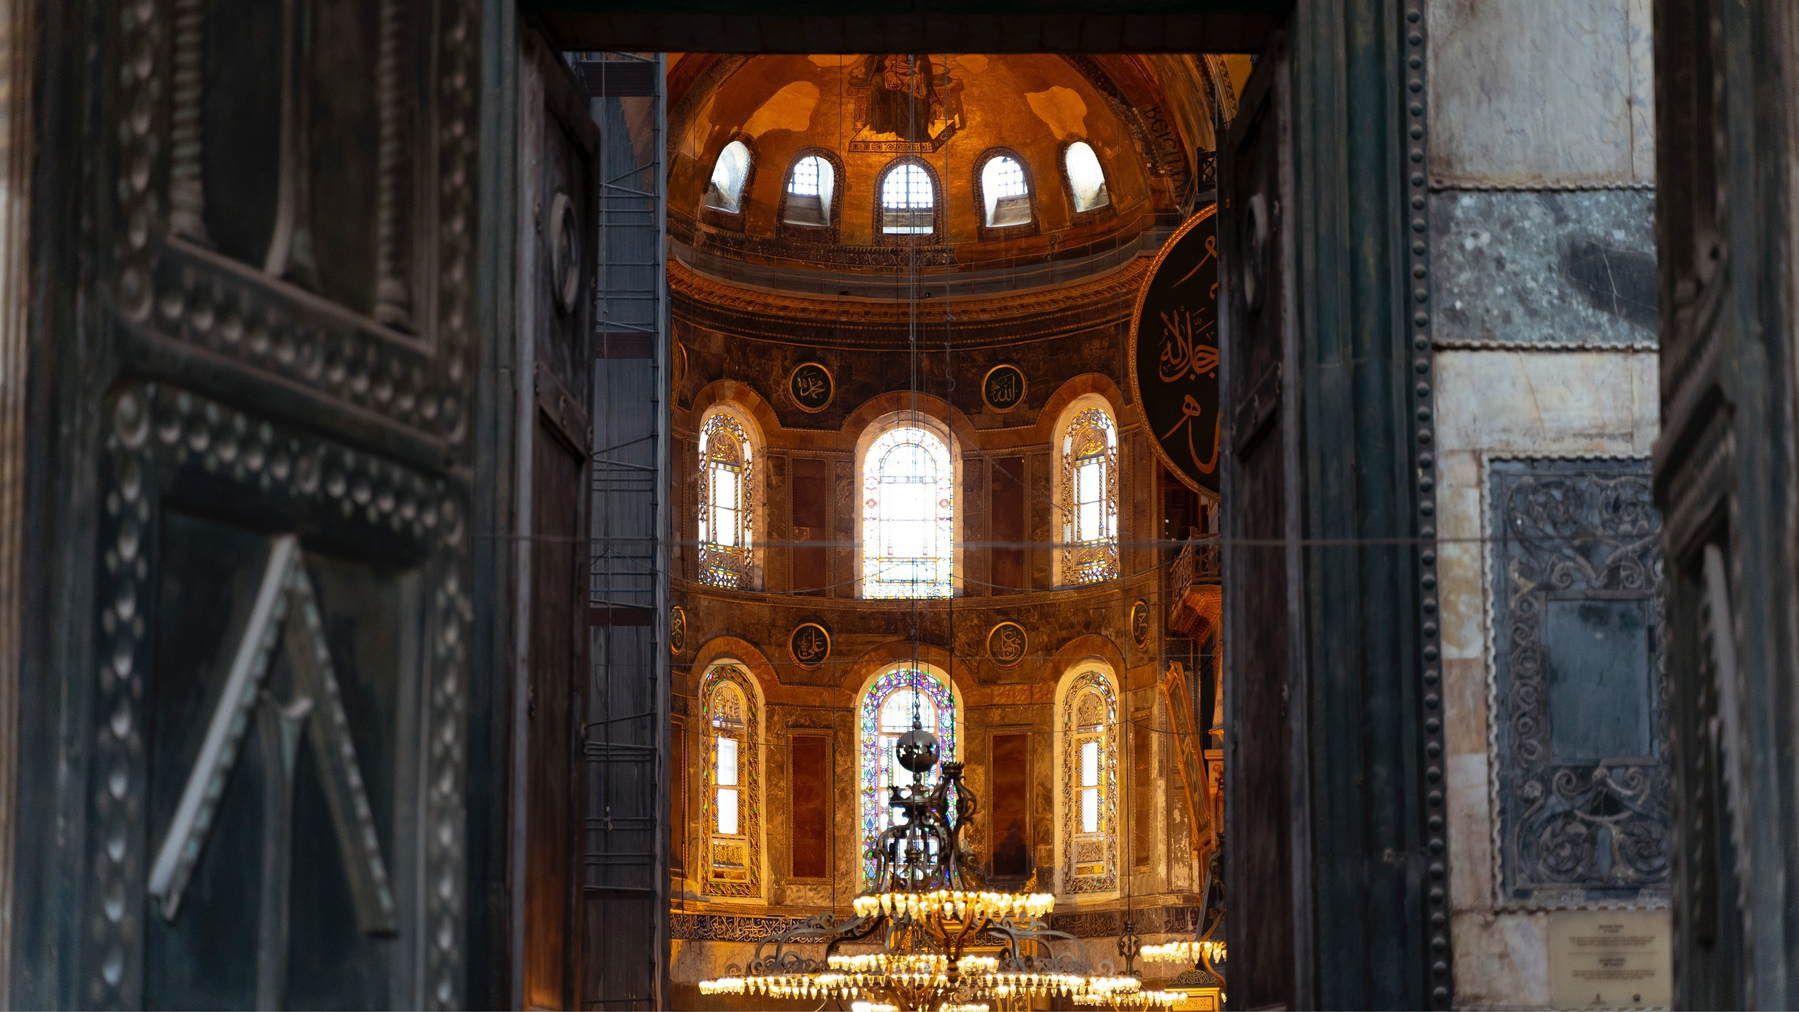 Hagia Sofia - Entrance showing the lit interiors.